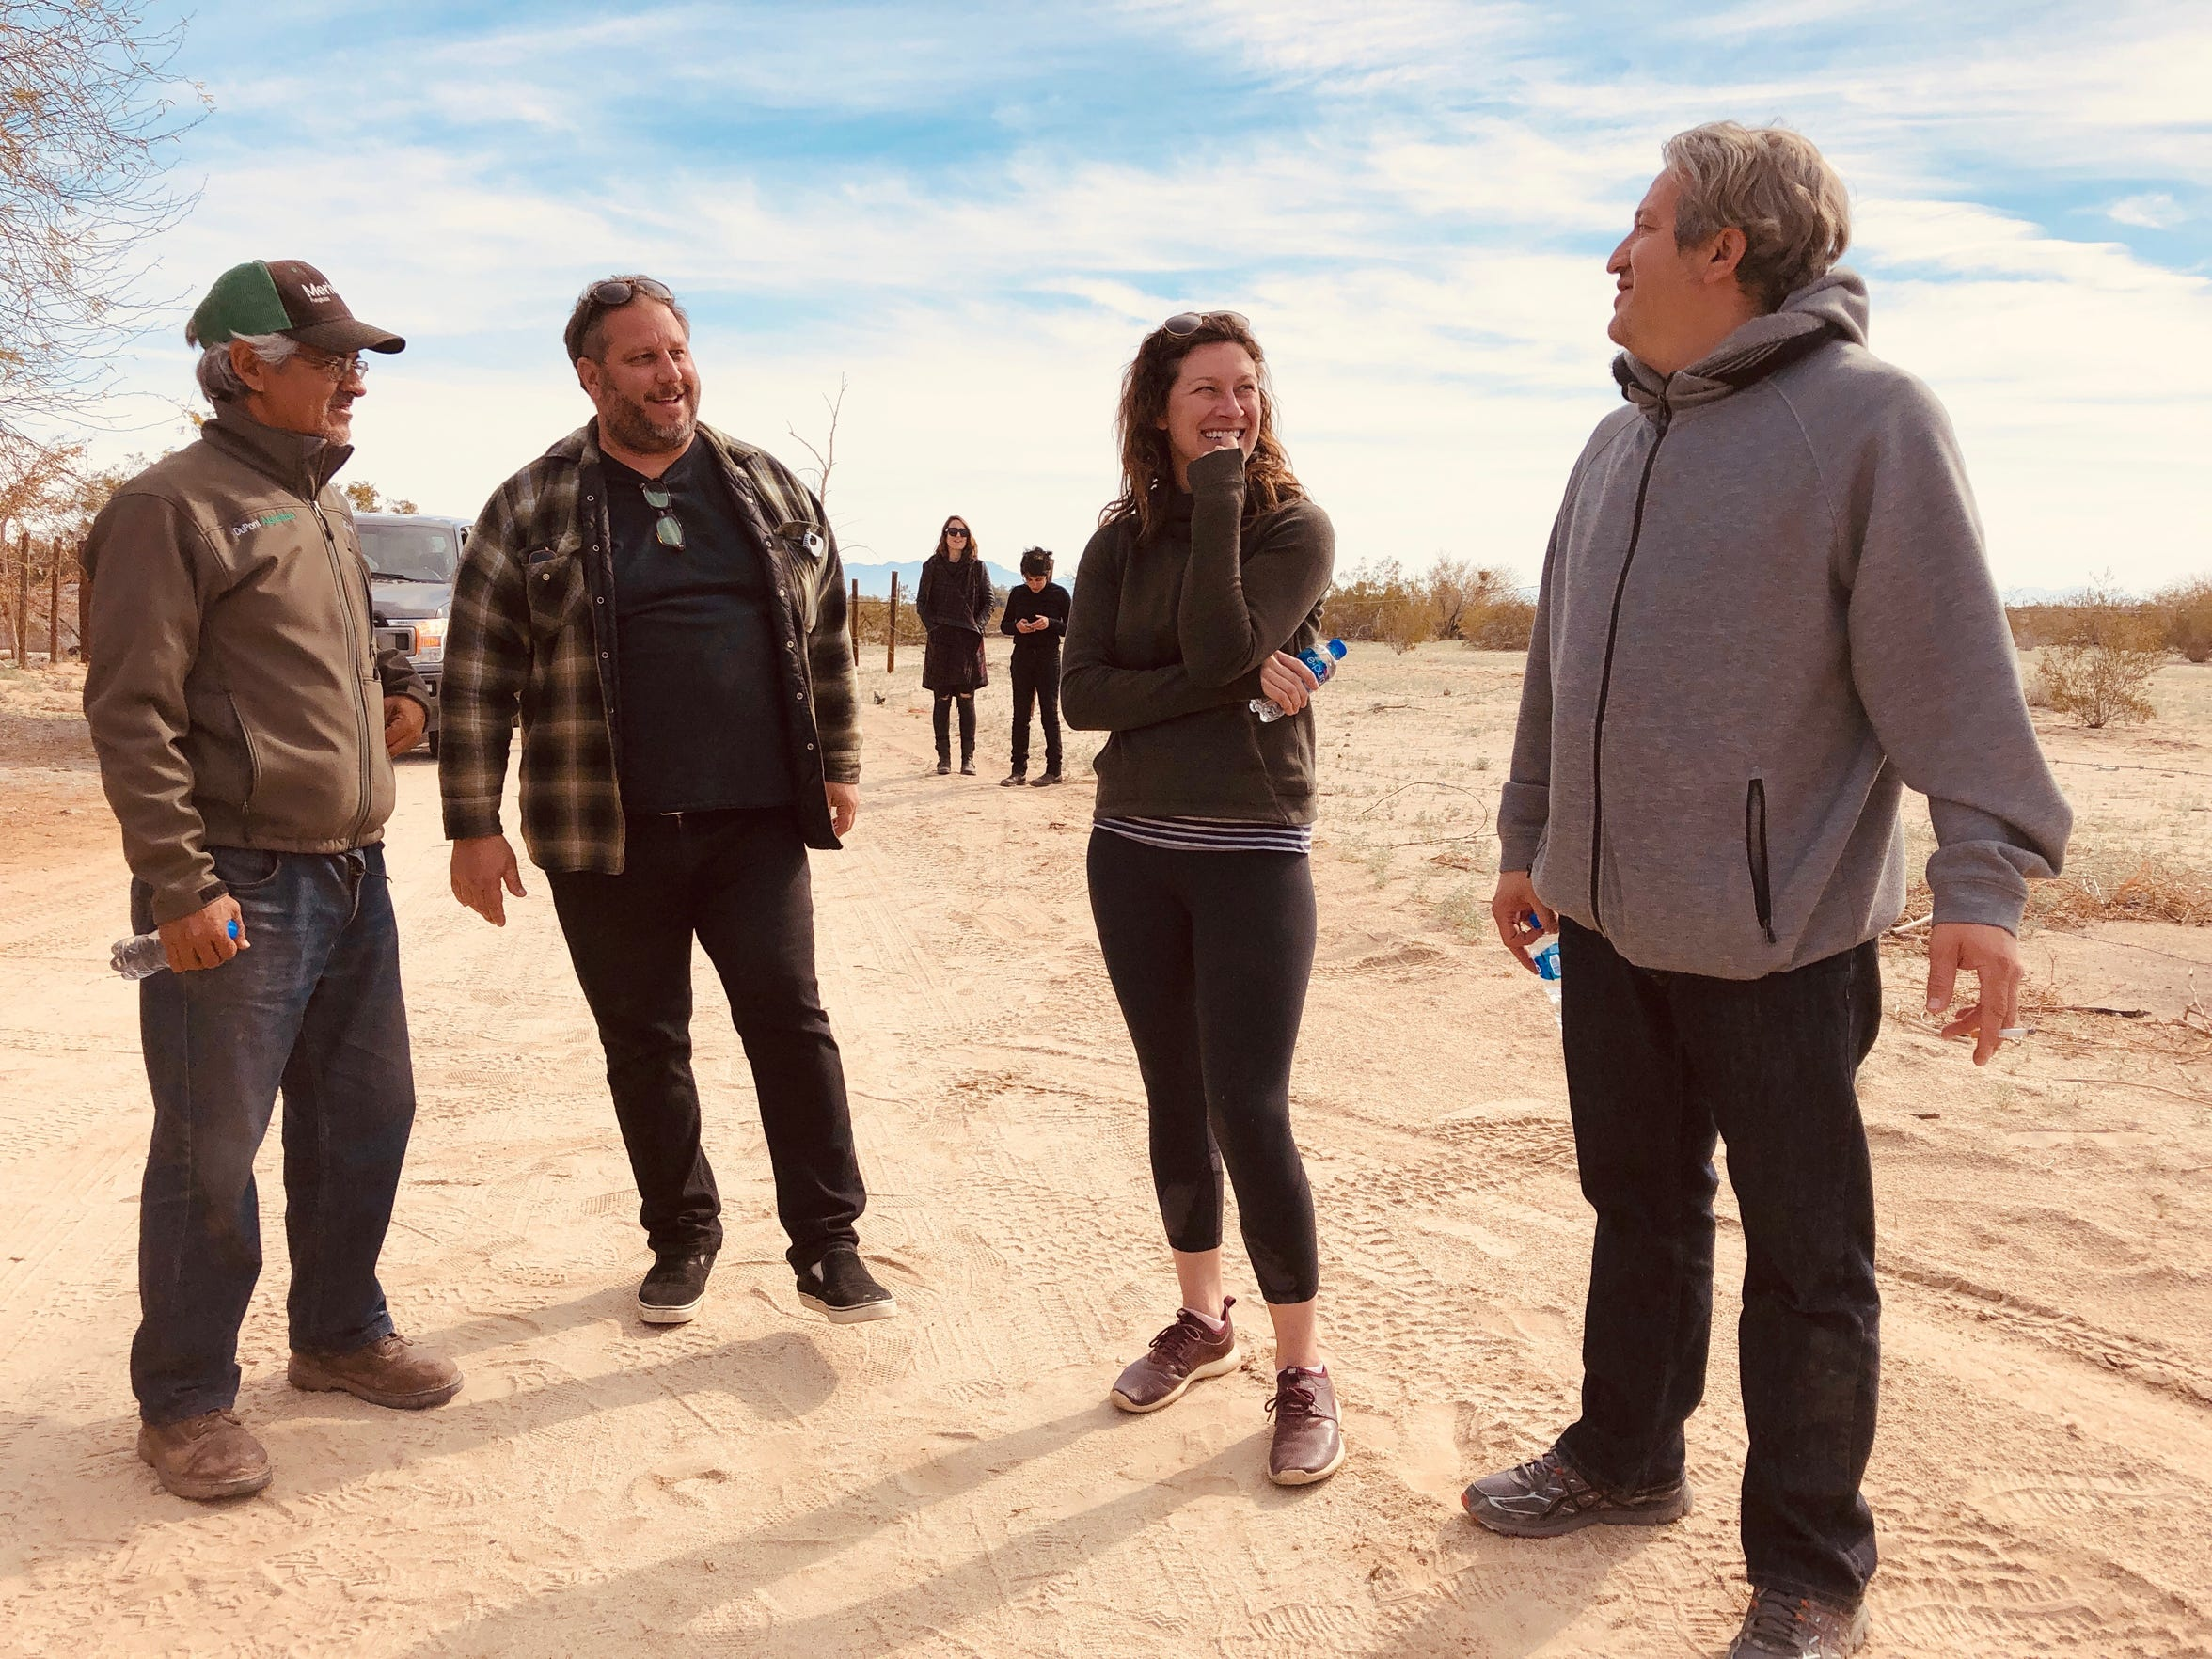 Desert Sun features editor Kristin Scharkey (second from right) and photojournalist Omar Ornelas (far right) in Laguna Salada while reporting on the lost ship of the desert. The pair traveled throughout Baja with the help of farmer Arturo Guerrero Cortés (far left) and road trip expert Rick Marino (second from left).